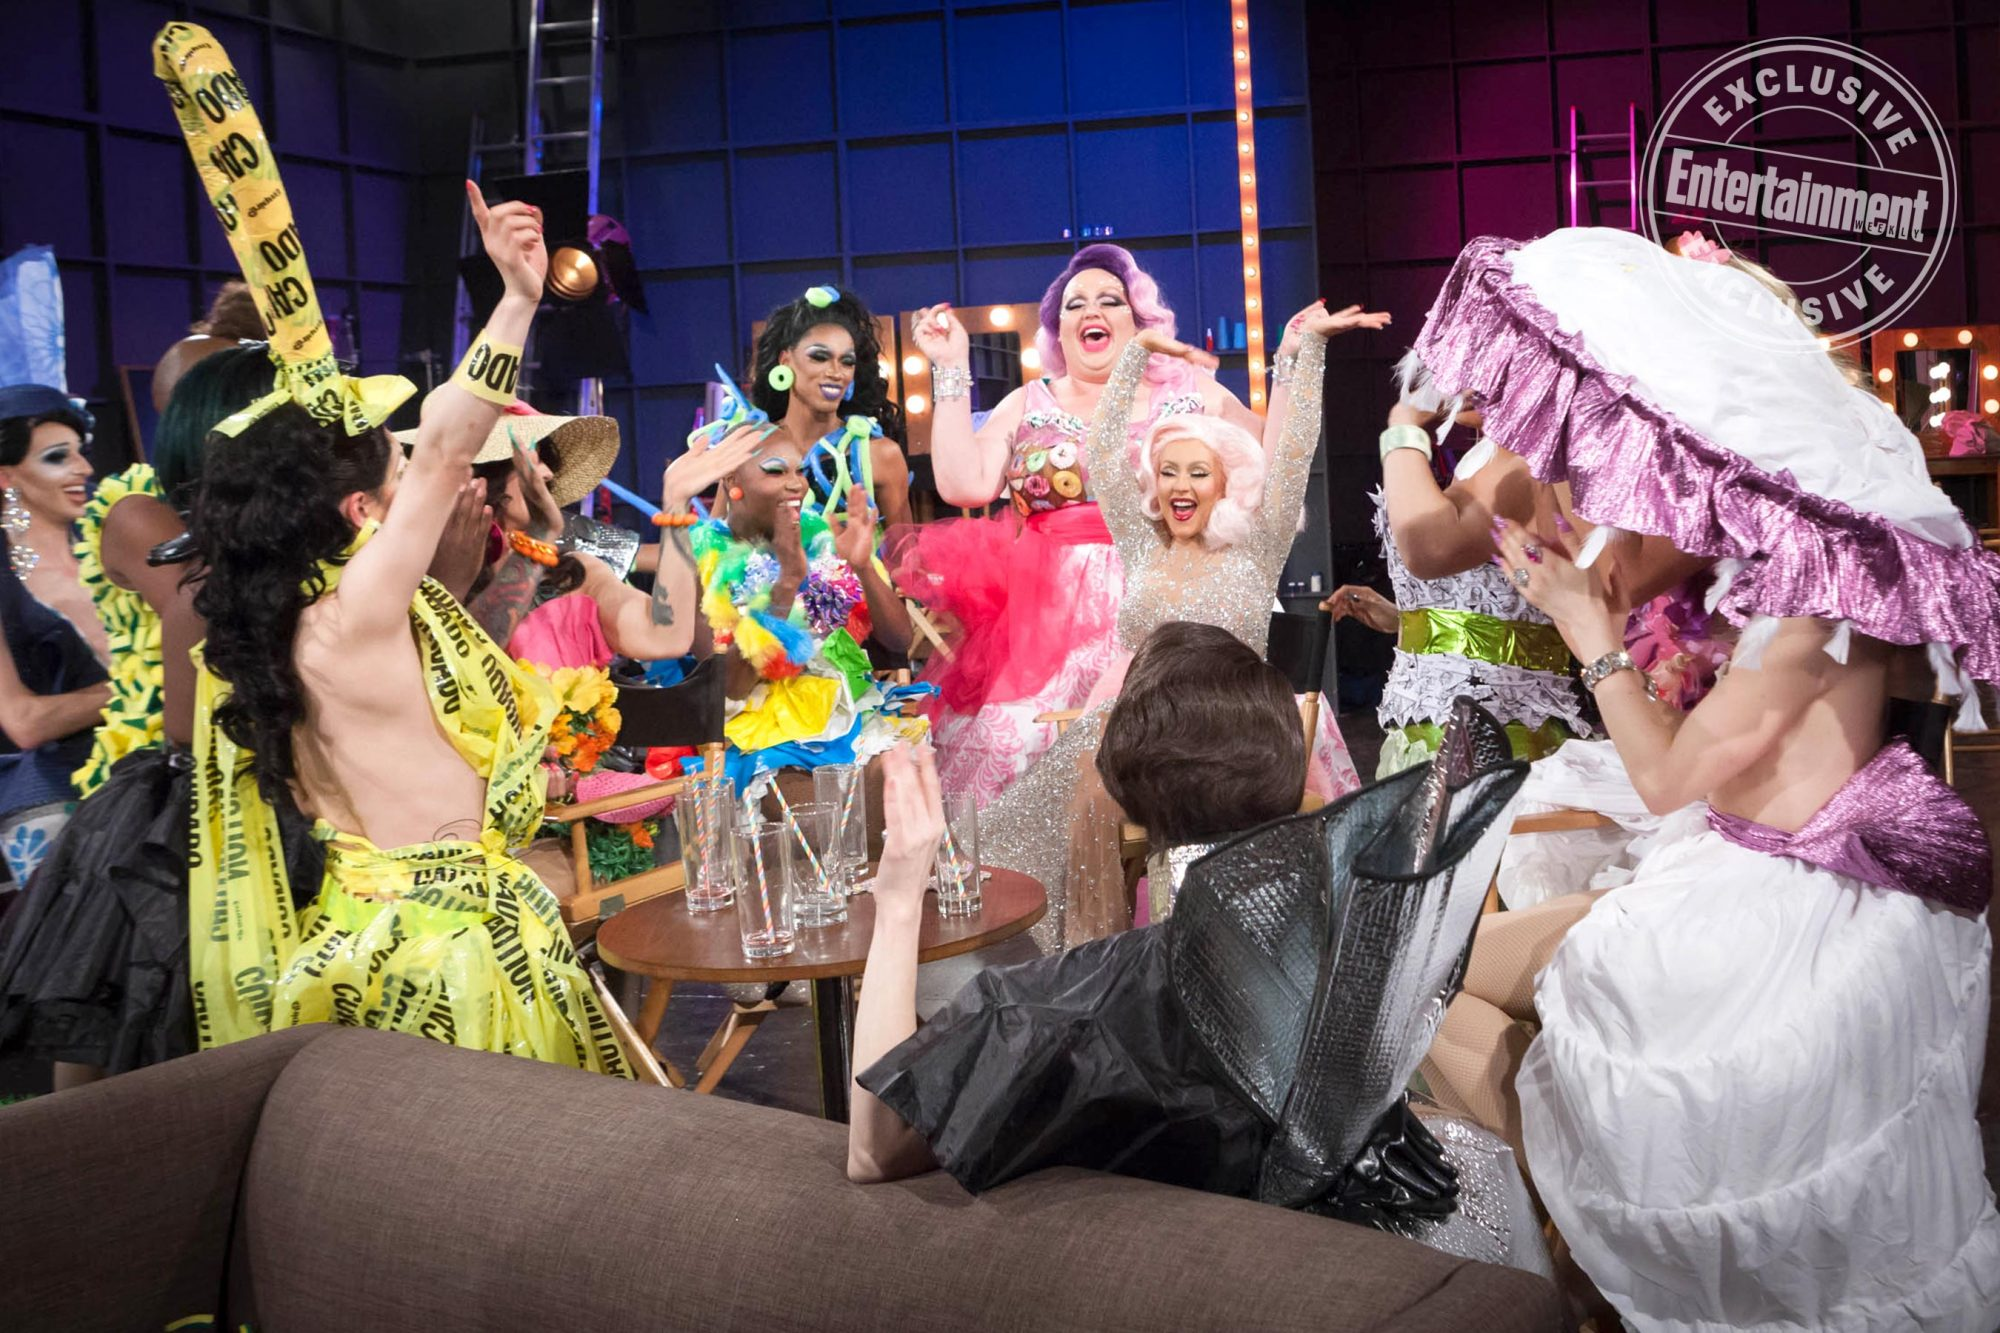 The cast captured lightning (laced with sequins) in a bottle...